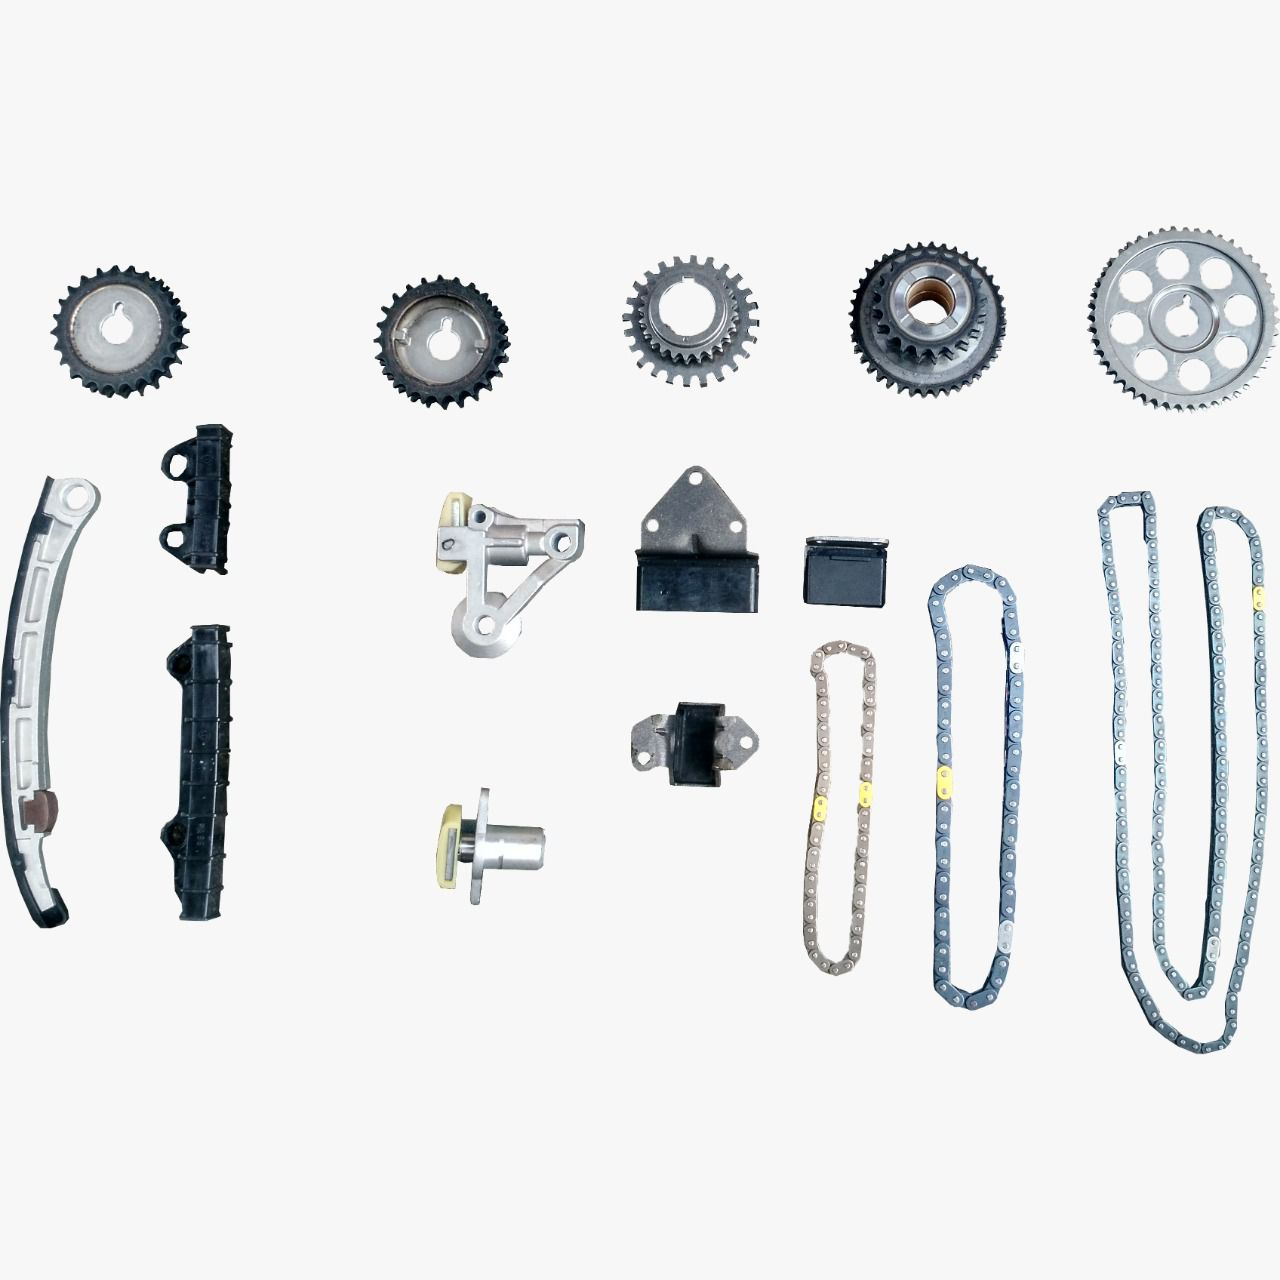 Kit Corrente Distribuição Suzuki Vitara 2.5 e 2.7 V6  Bloco do Motor H25A Ano 2000/....